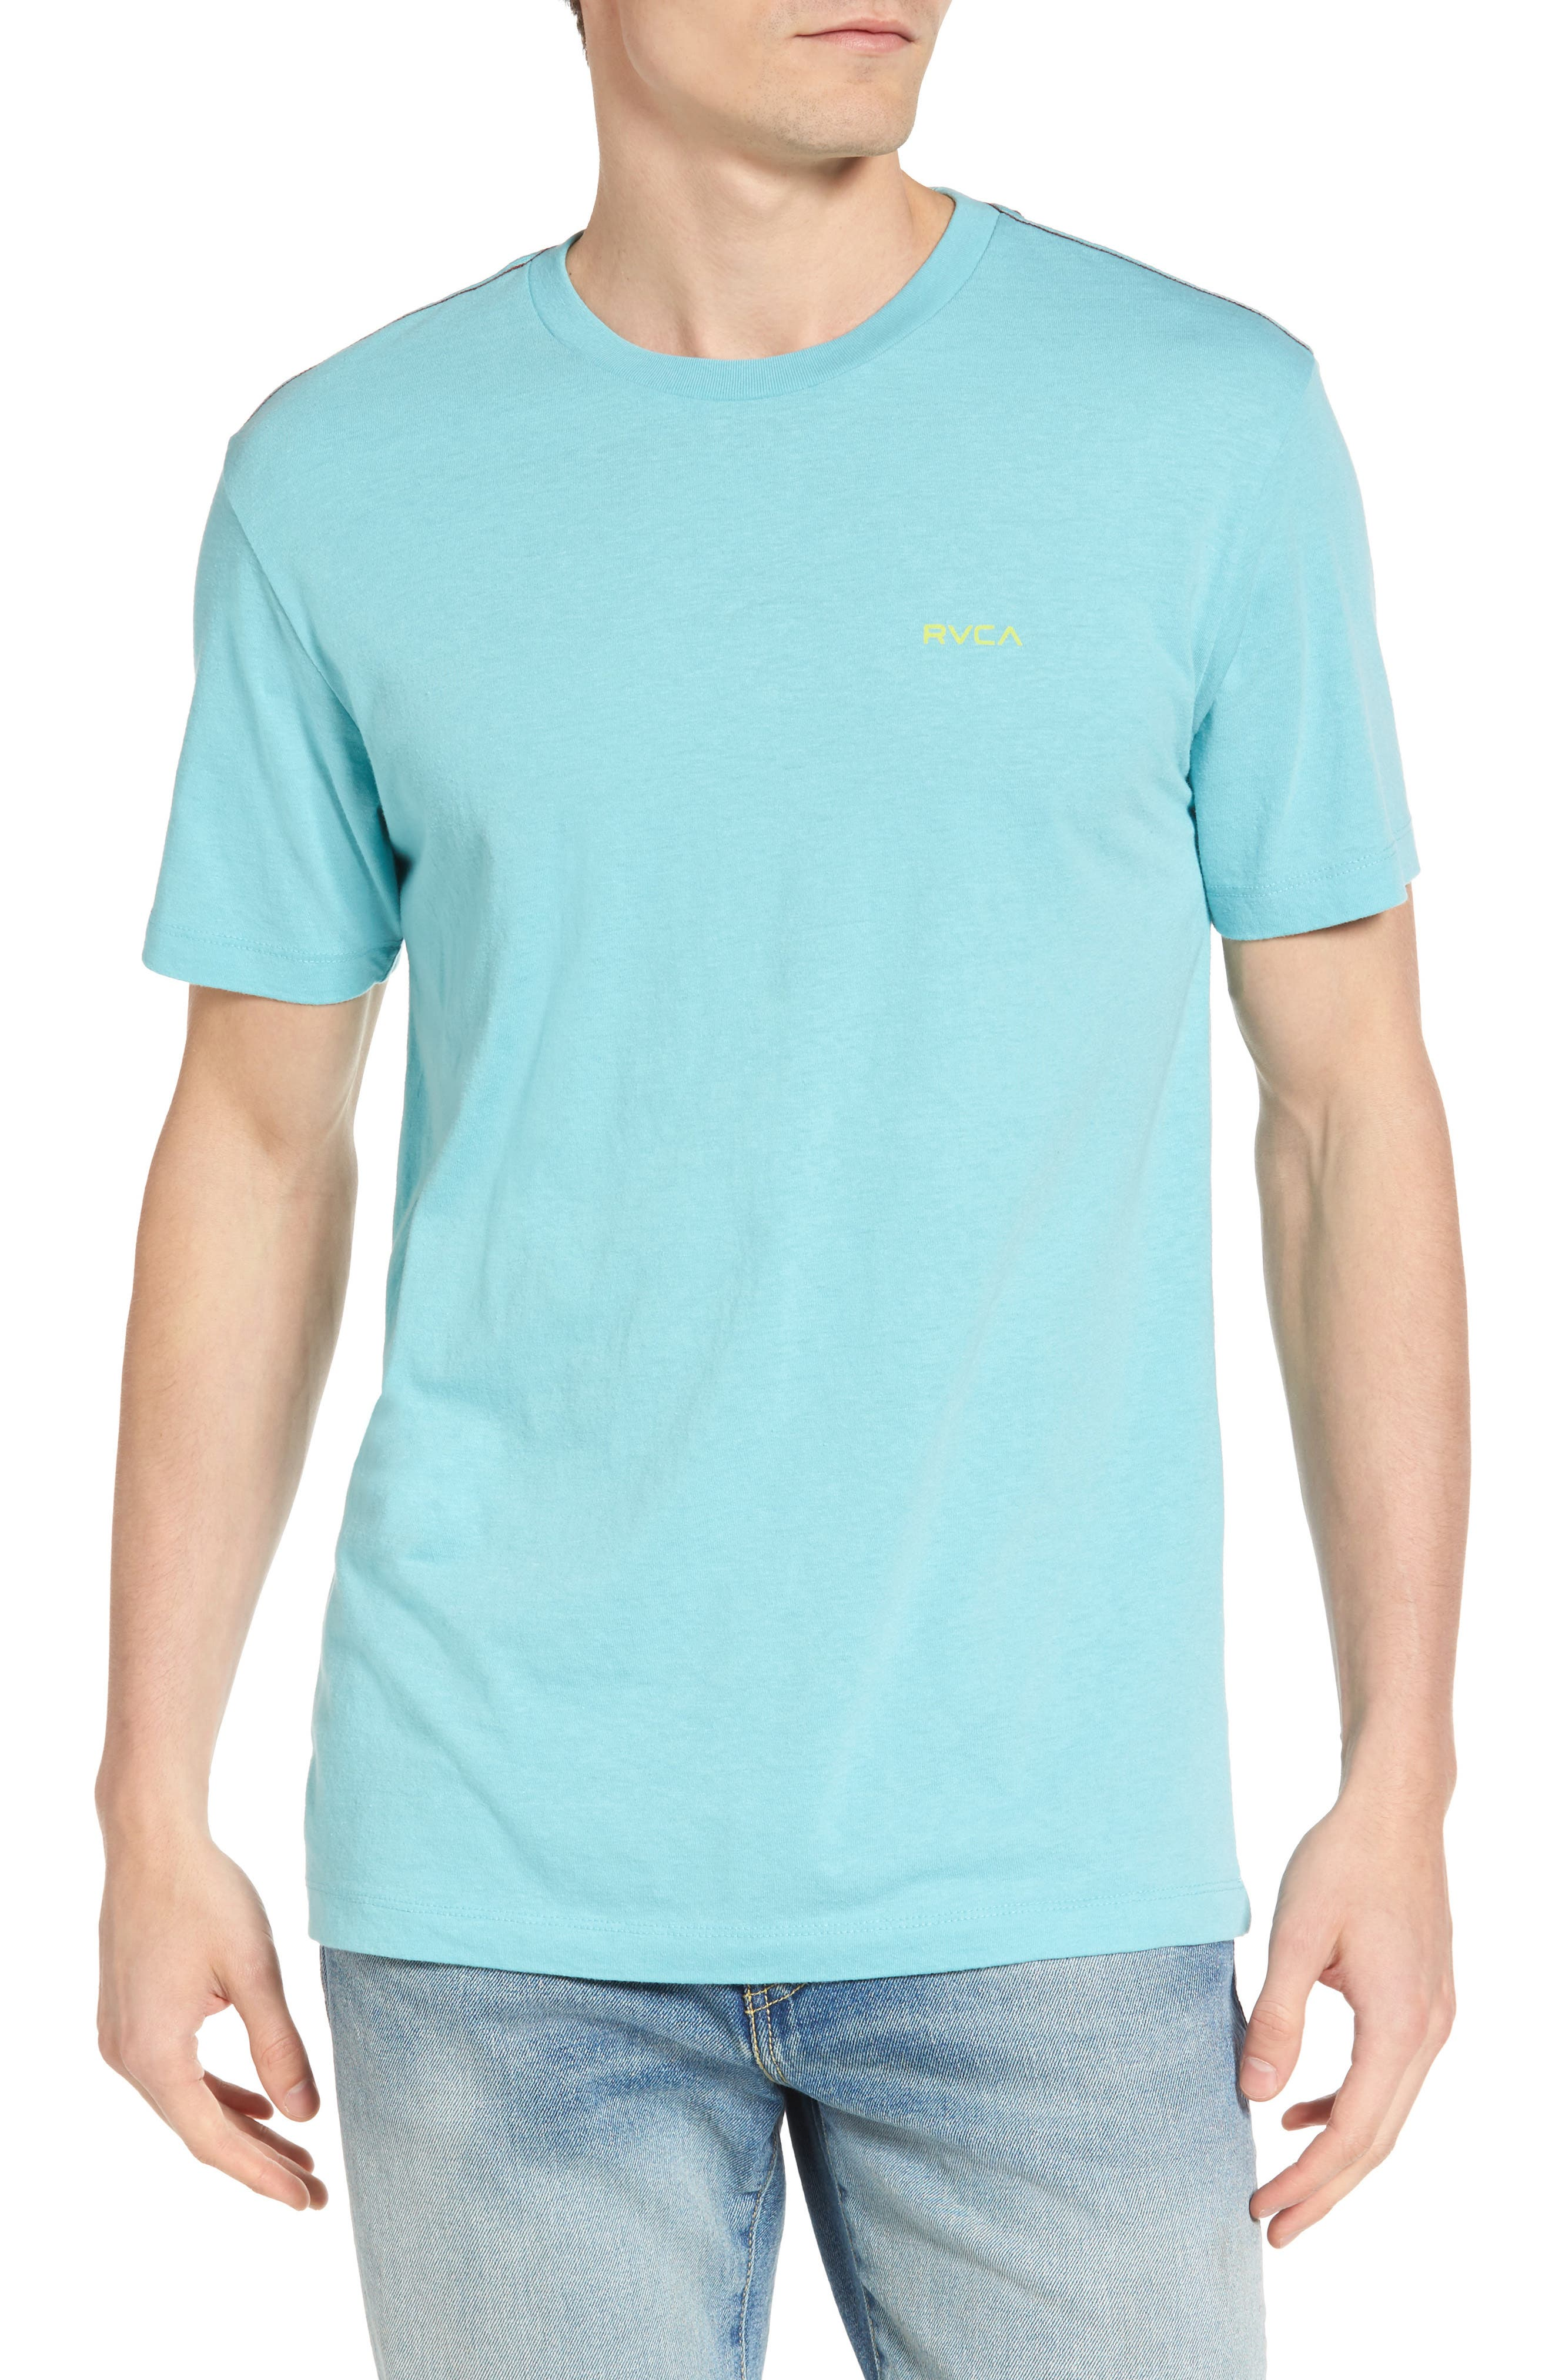 Alternate Image 1 Selected - RVCA Small RVCA Chest Graphic T-Shirt